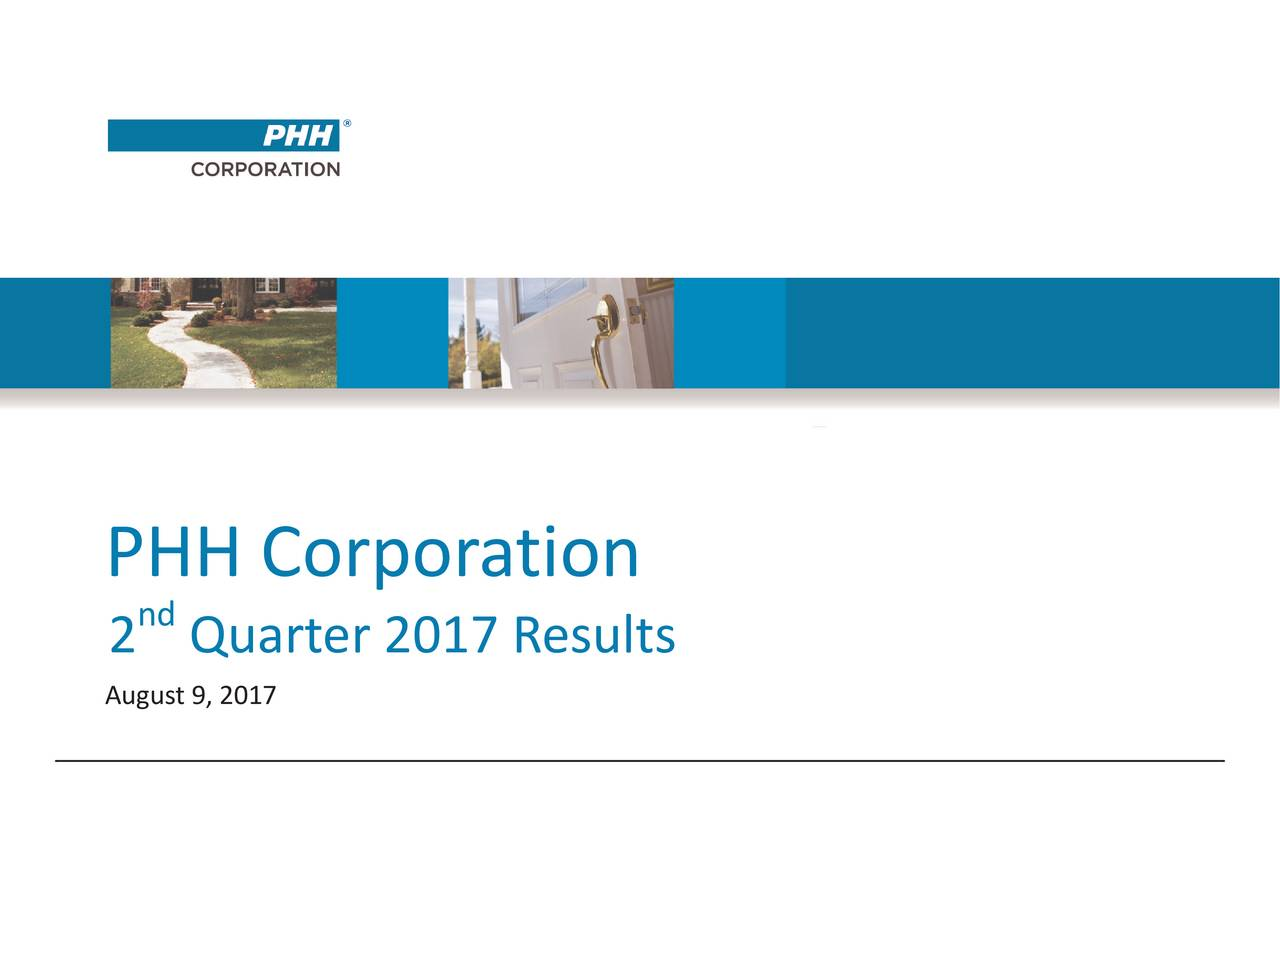 nd 2 Quarter 2017 Results August9, 2017